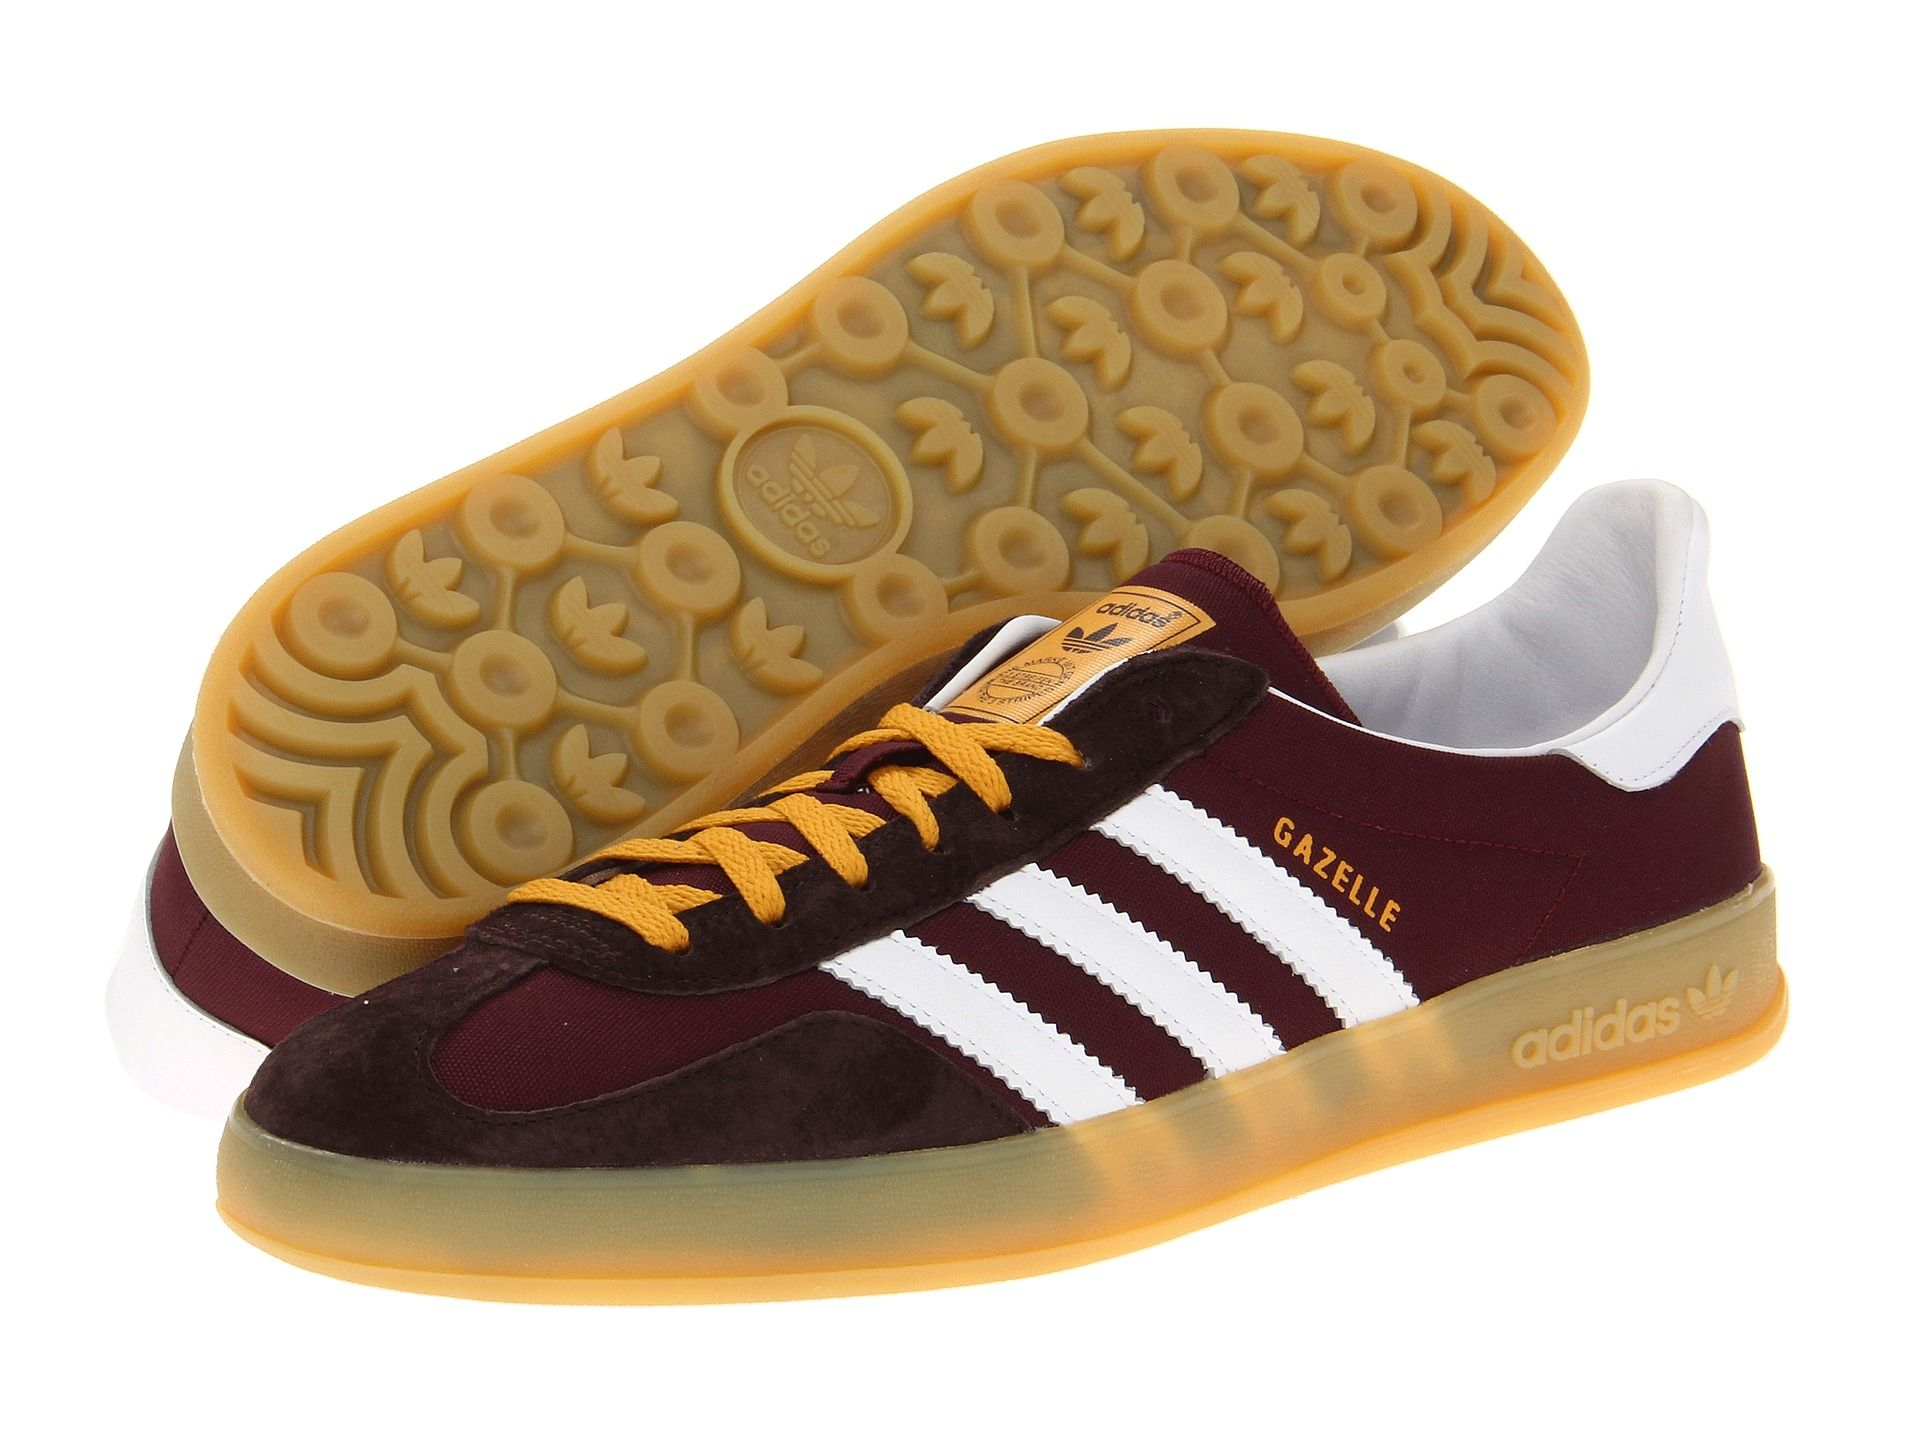 entusiasmo creativo Nombrar  Search - adidas originals gazelle indoor | Adidas, Adidas originals,  Comfortable boots